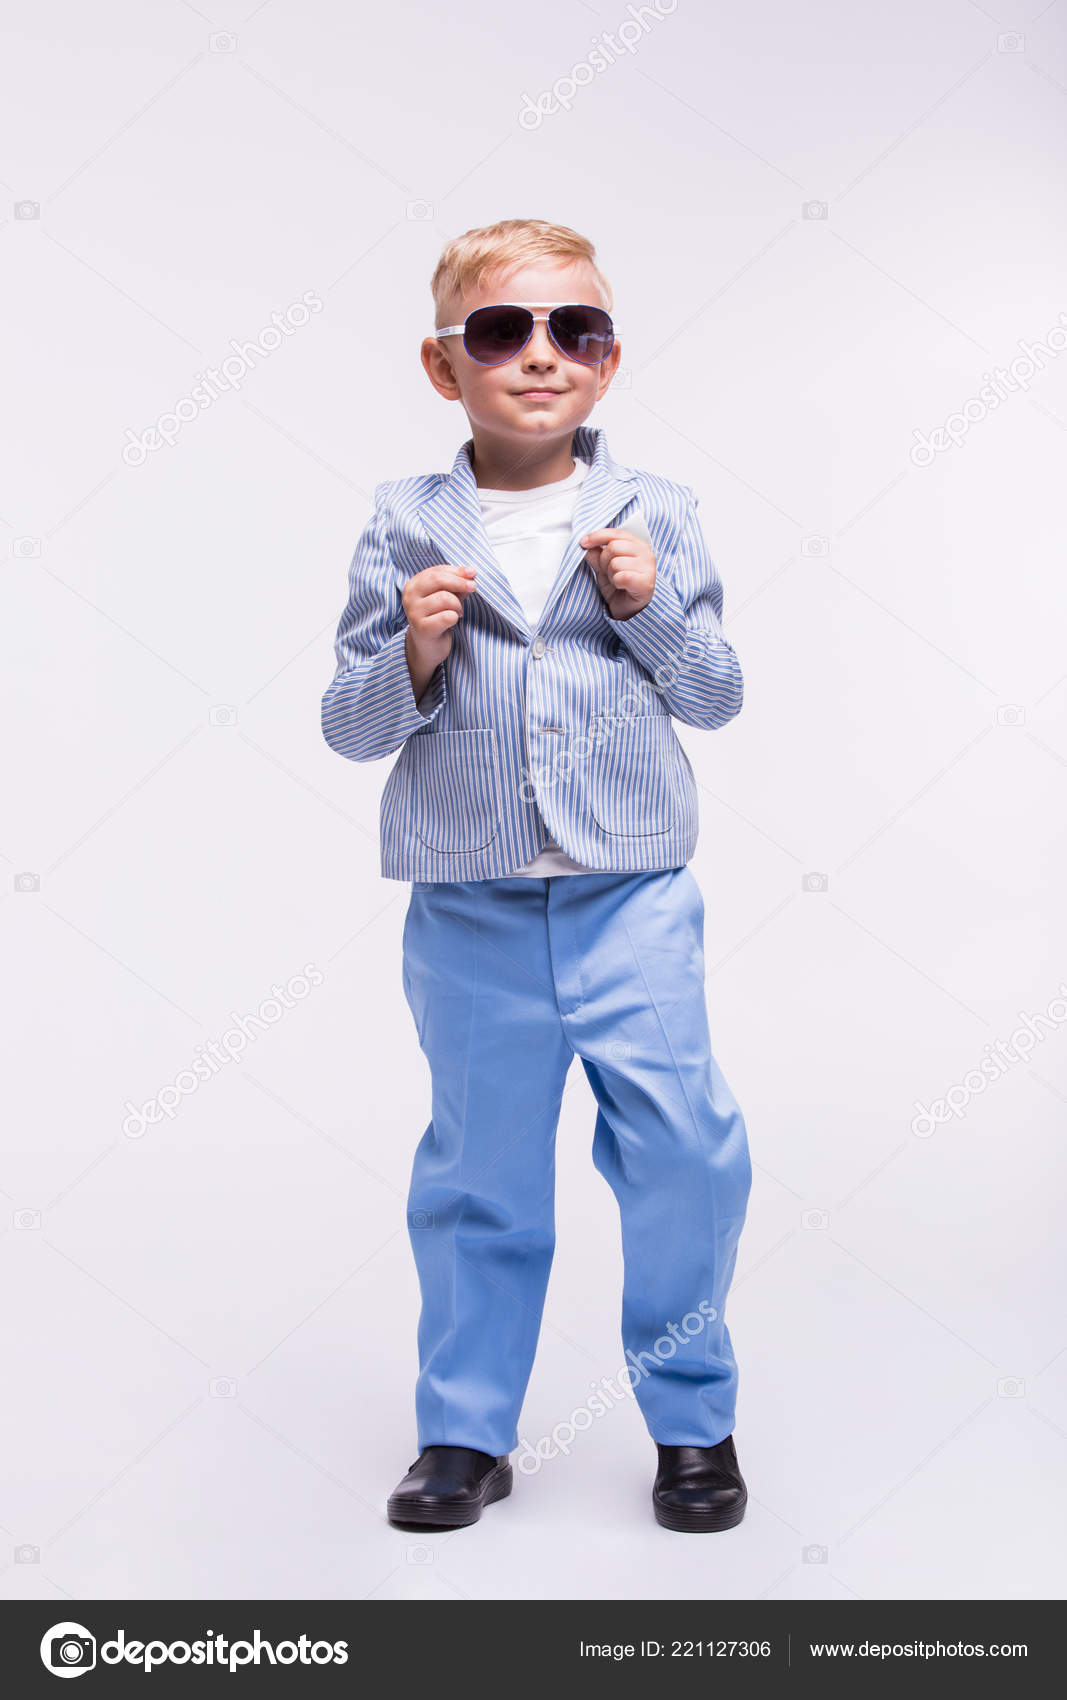 2af96b283 A cute little boy in a sunglasses and an elegant suit dancing isolated on a  white background. Happy children concept — Photo by ...